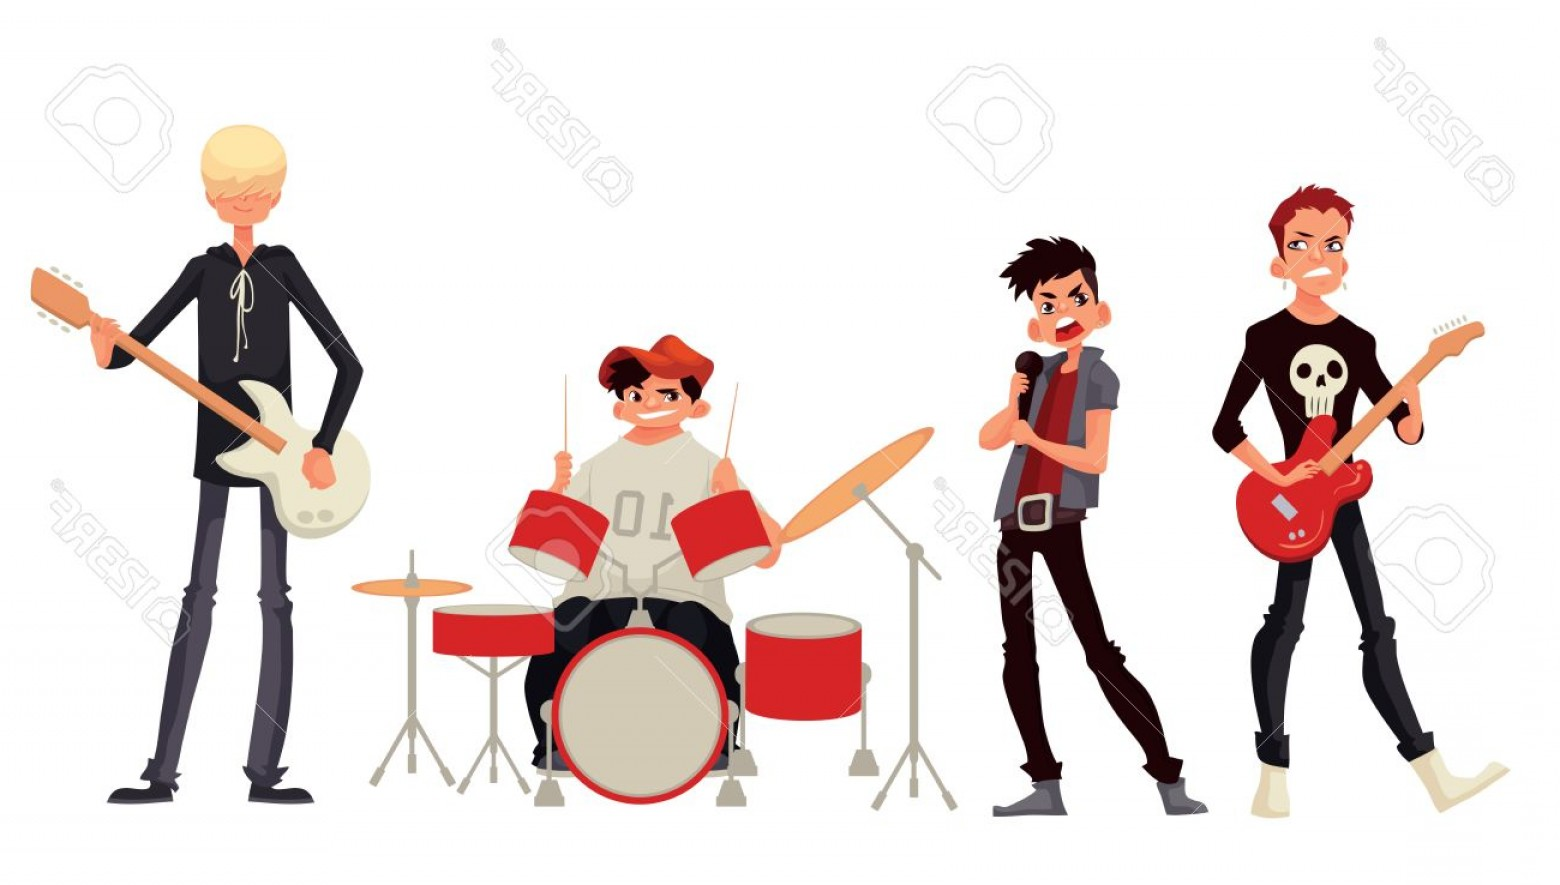 Musician Person Vector: Photostock Vector Cartoon Rock Group Musicians Vector Illustration Isolated On White Background Rock Star Singer Guita